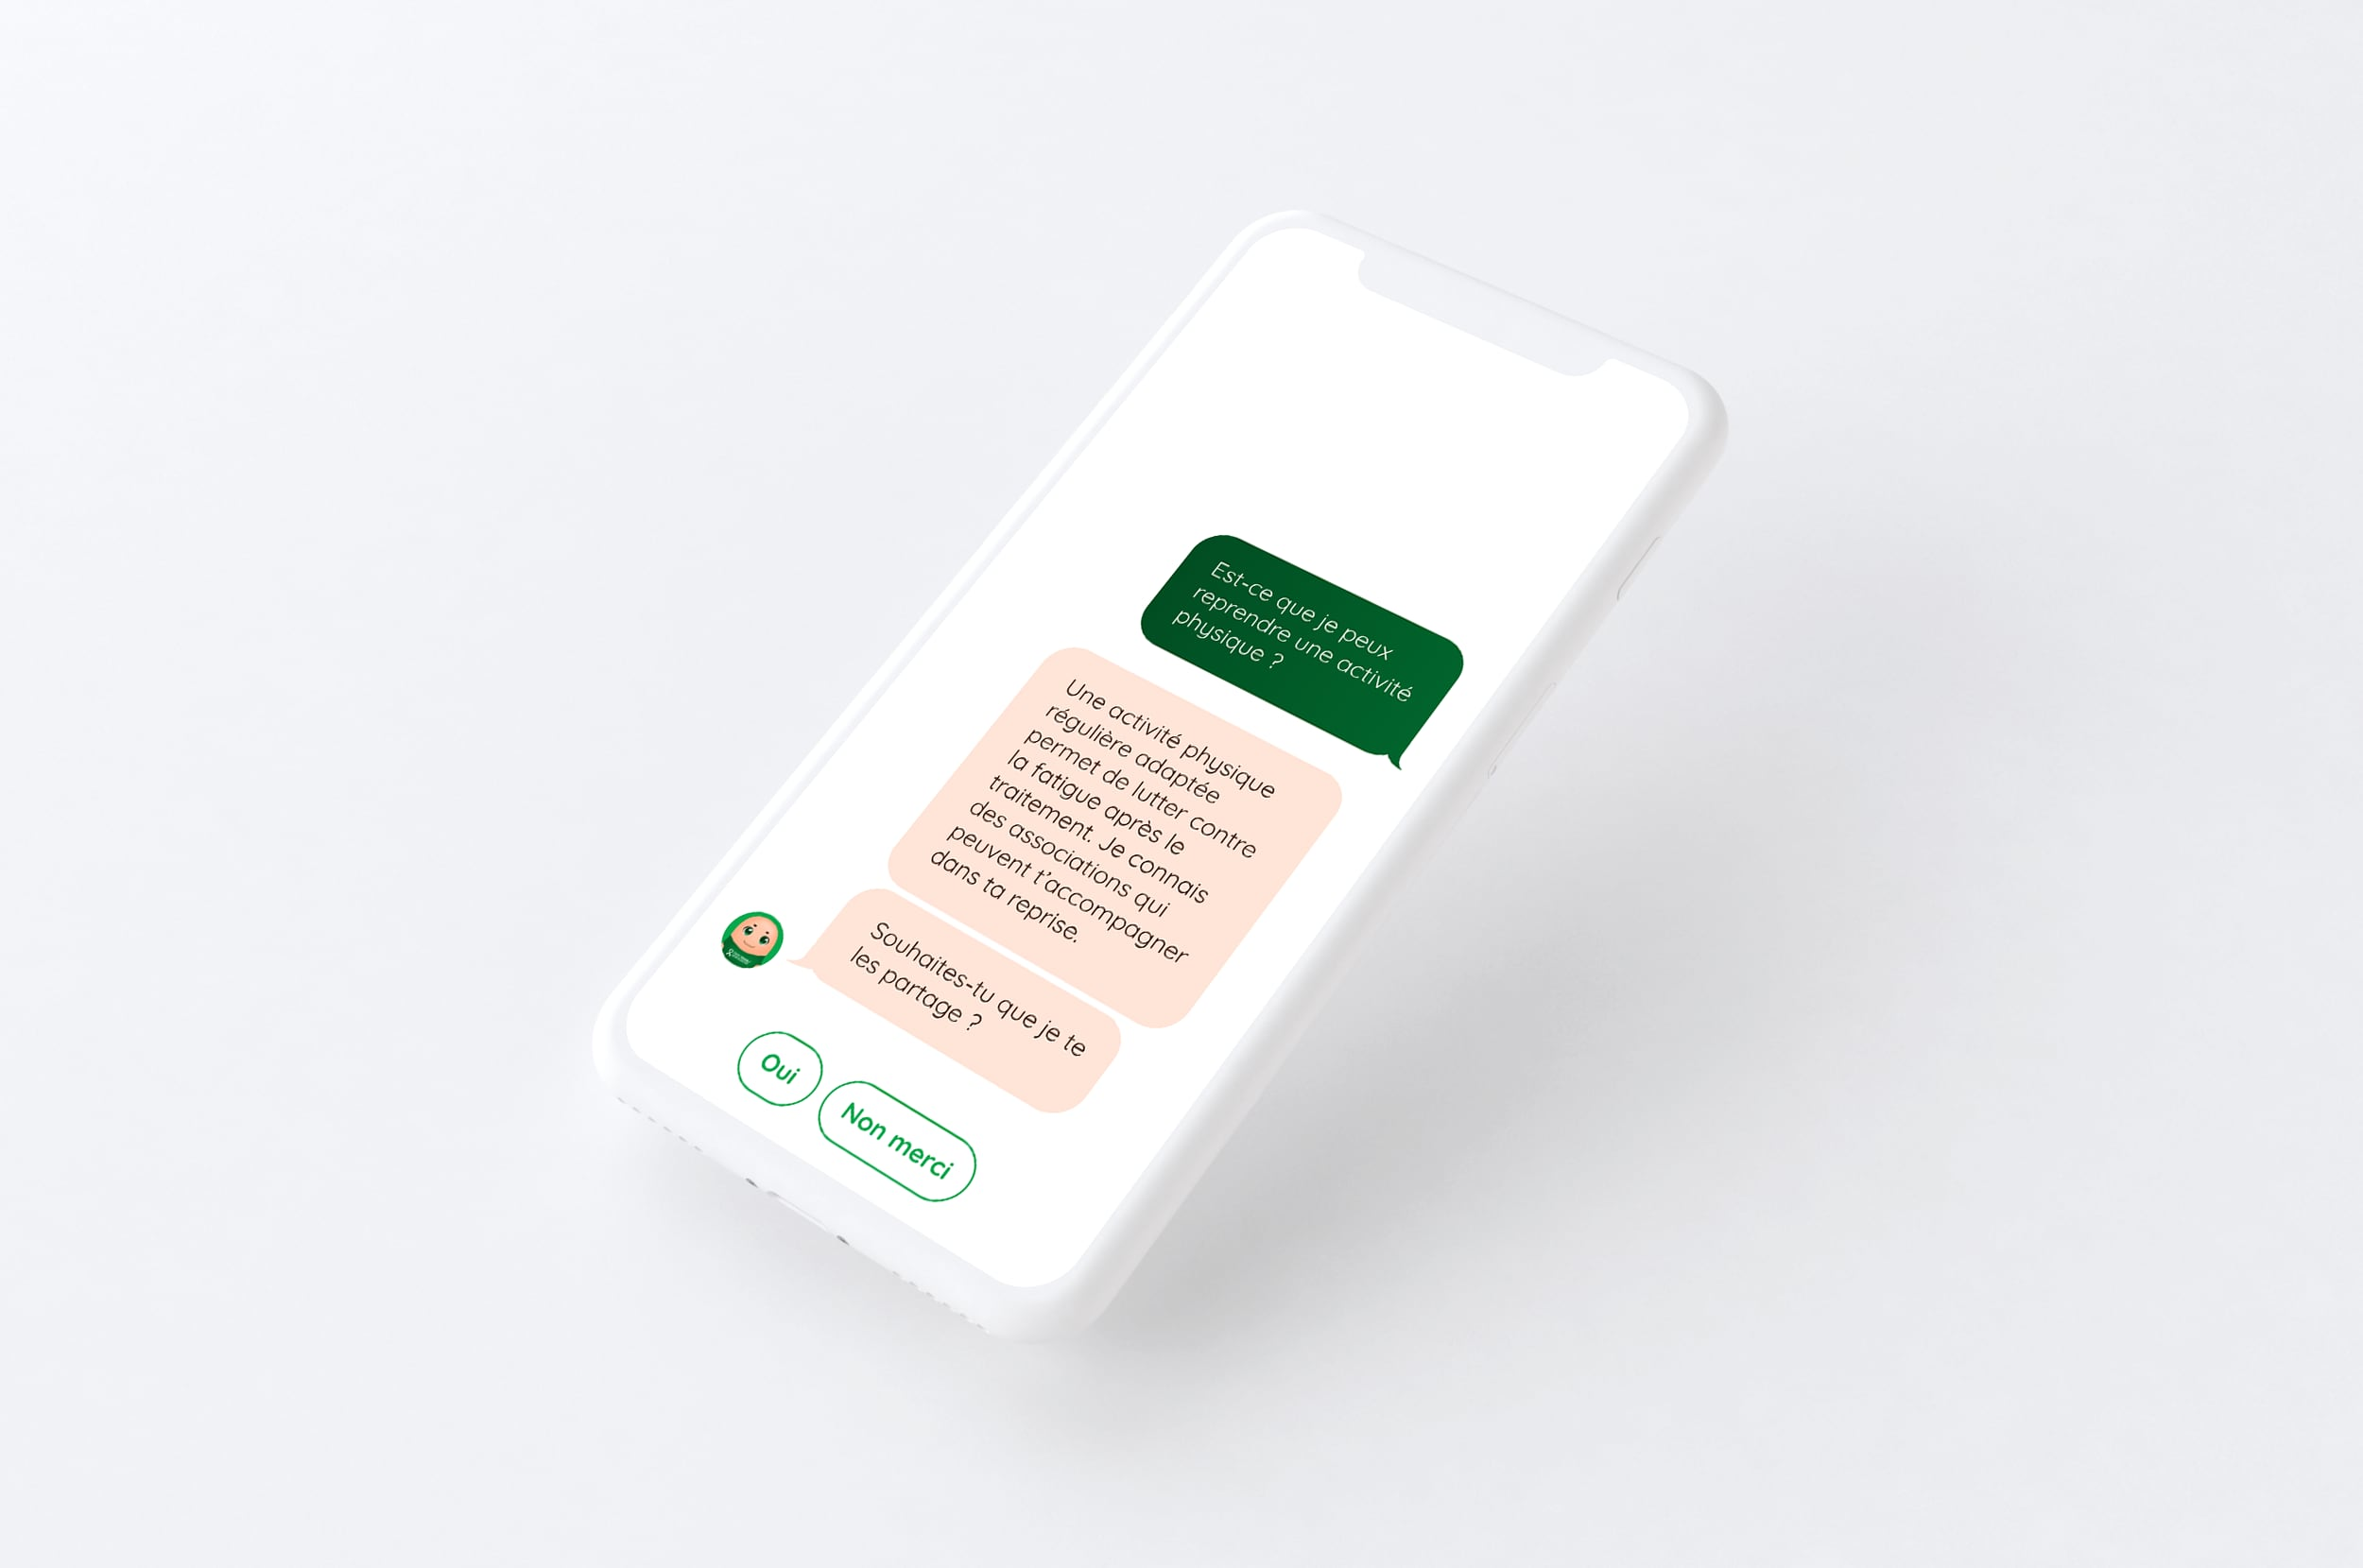 techcrunch.com - Romain Dillet - Wefight answers questions about chronic illness with its virtual assistant